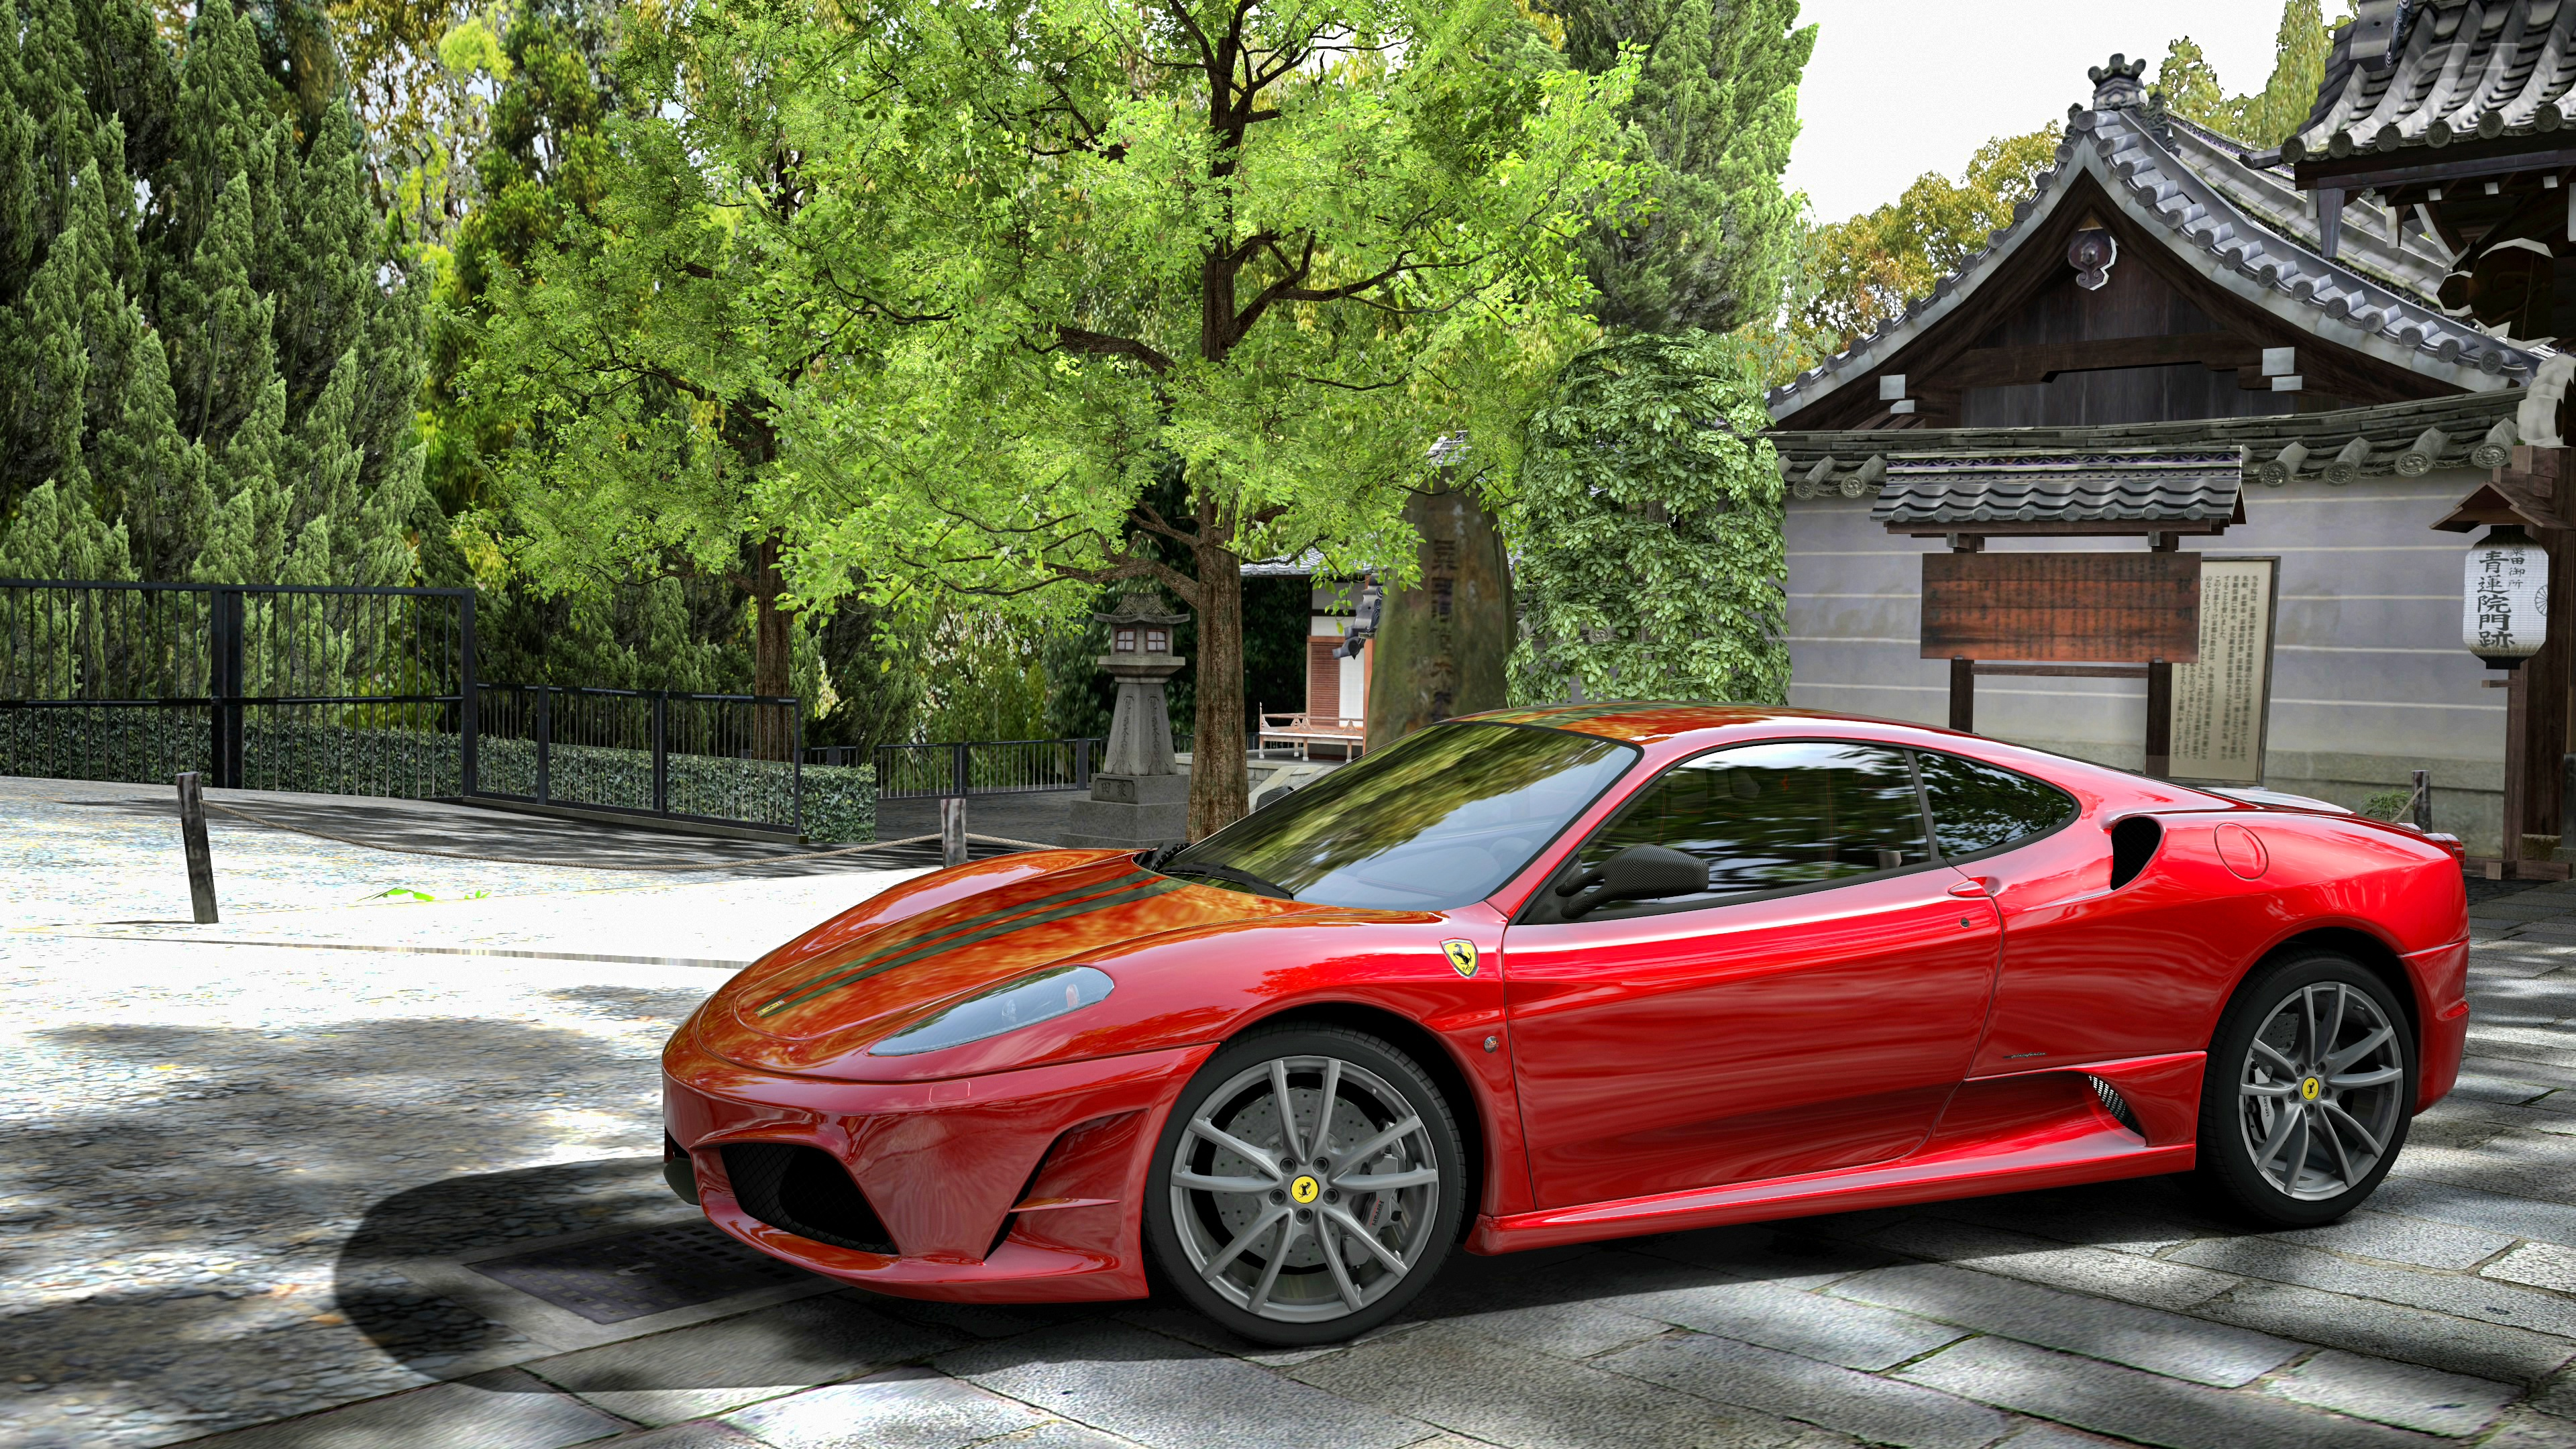 ls land 07 ... Ferrari 430 Scuderia '07 by LS-Coloringlife